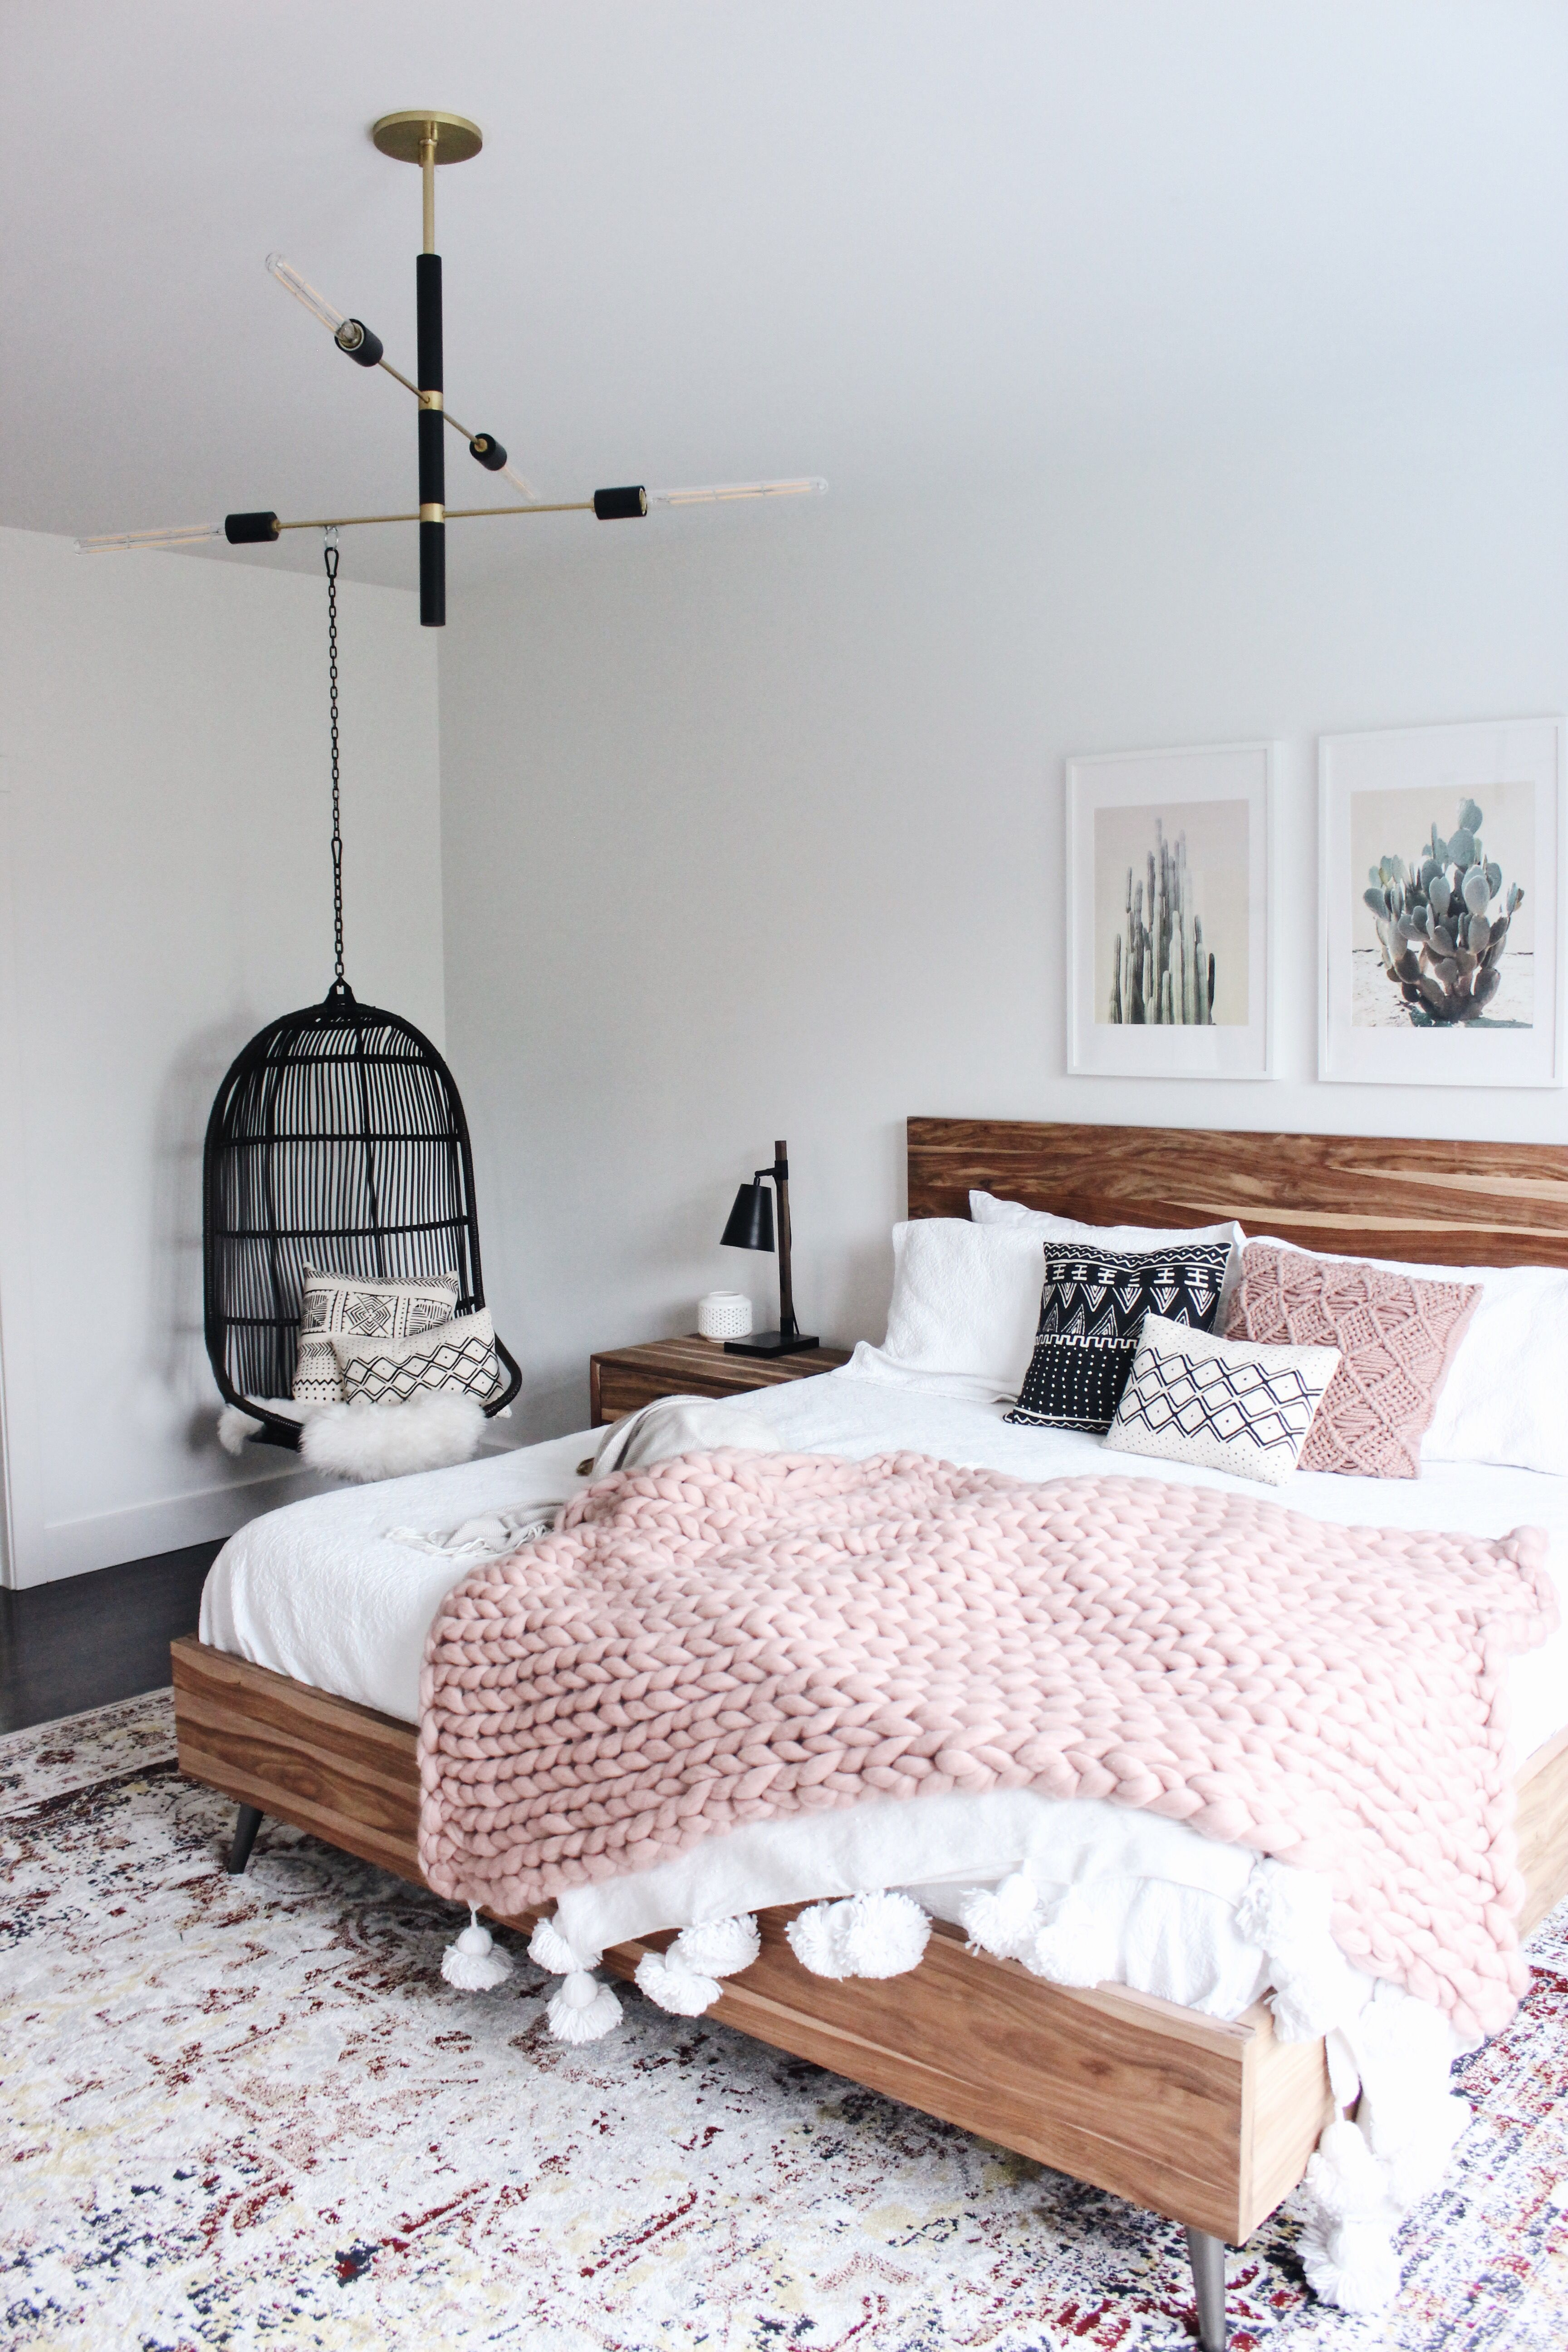 Boho bedroom, pink, hanging chair | Simple bedroom decor ... on hippie bedroom ideas, boho curtains ideas, gypsy decorating ideas, boho home decor, boho bathroom ideas, bohemian decorating ideas, southwest style interior decorating ideas, slanted bedroom wall ideas, rooms for teenage girl bedroom ideas, boho design ideas, boho apartment ideas, boho garden ideas, boho window ideas, boho room ideas, boho home ideas, natural minimalist living ideas, boho modern bedrooms, chic bedroom ideas, boho chic decor, boho candles ideas,